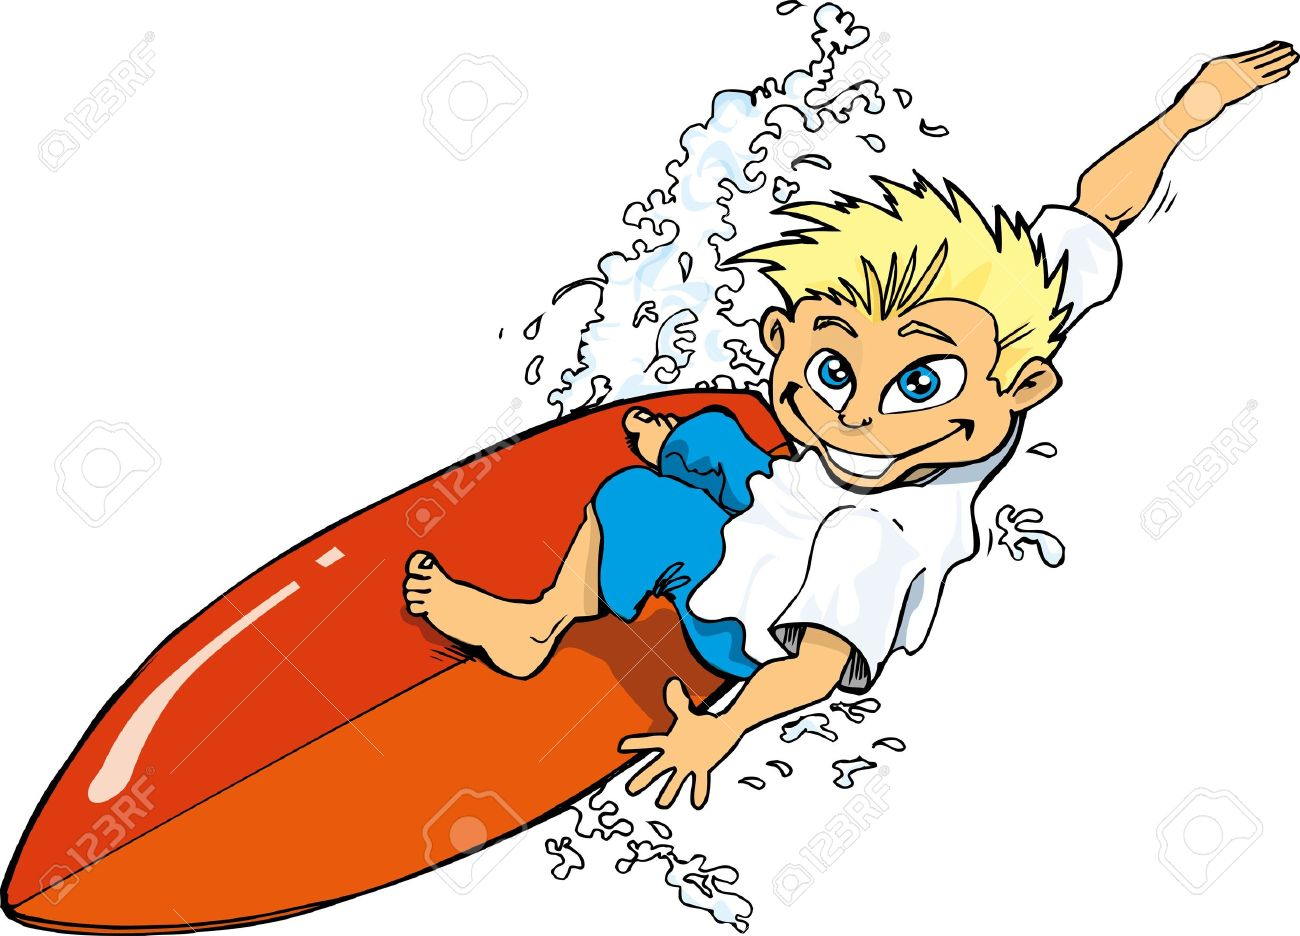 cartoon surfer boy riding a surf board isolated on white royalty rh 123rf com free surfer girl clip art surfer silhouette clip art free